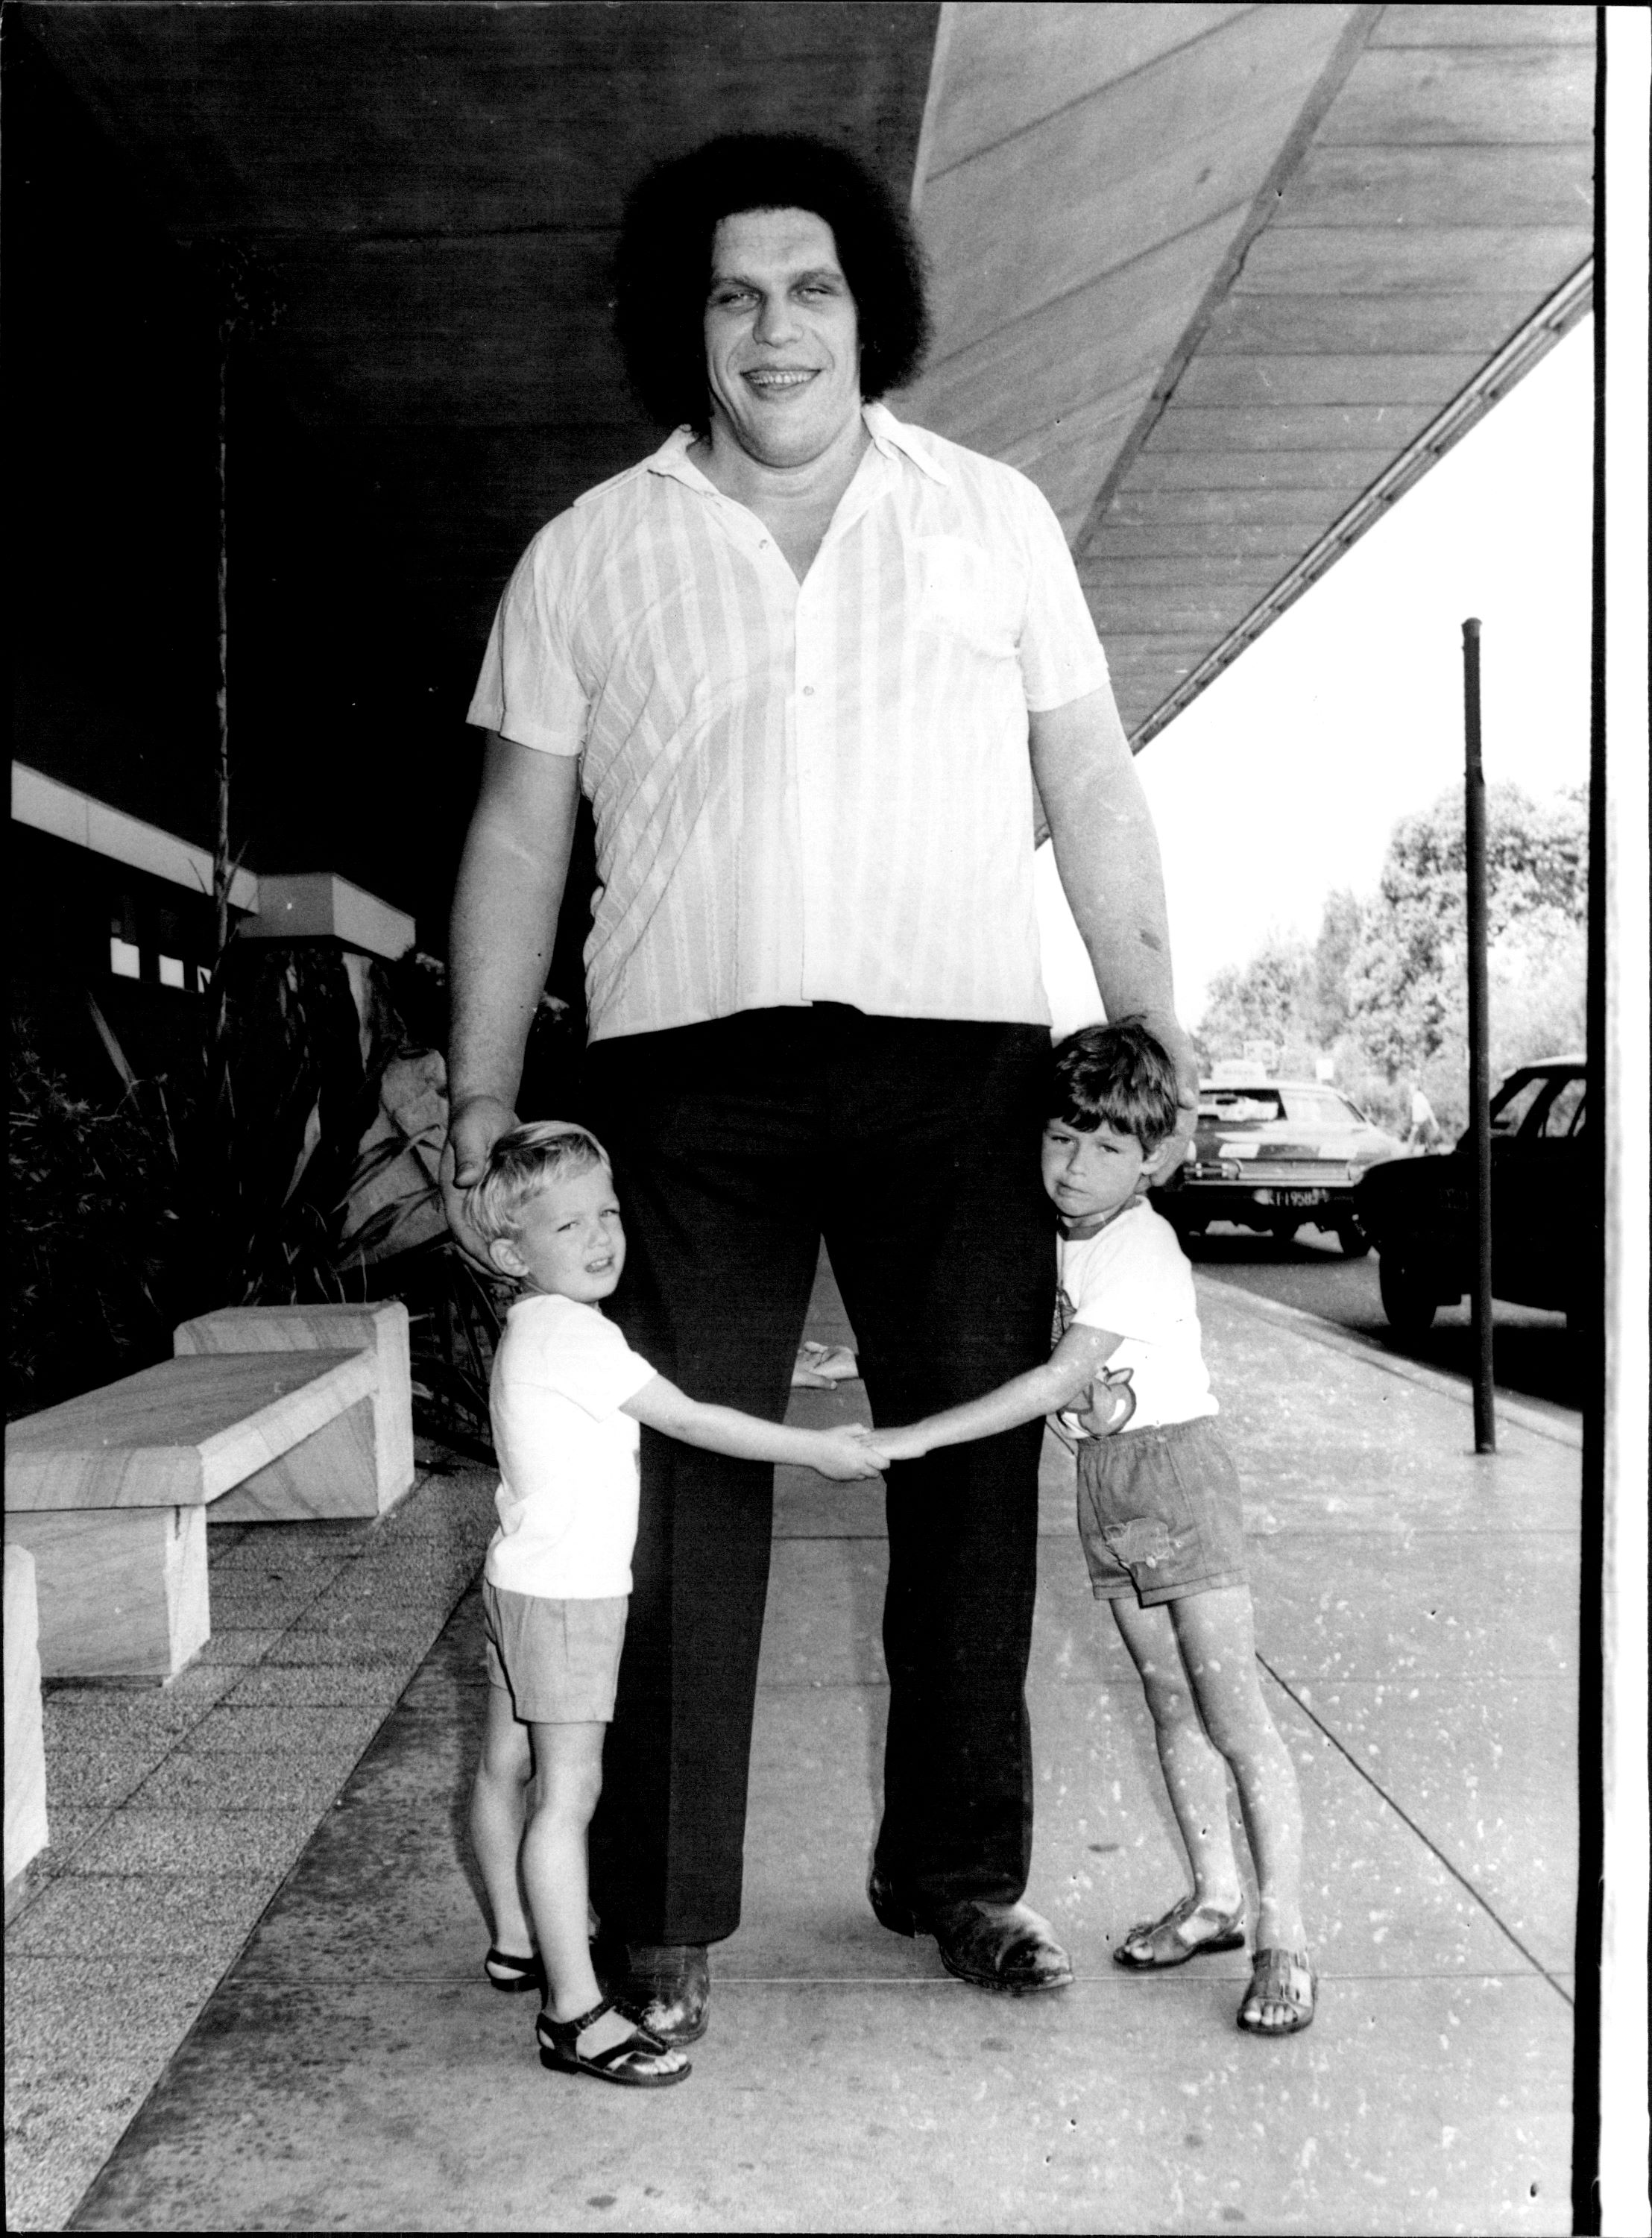 Andre the Giant. I Image: Getty Images.